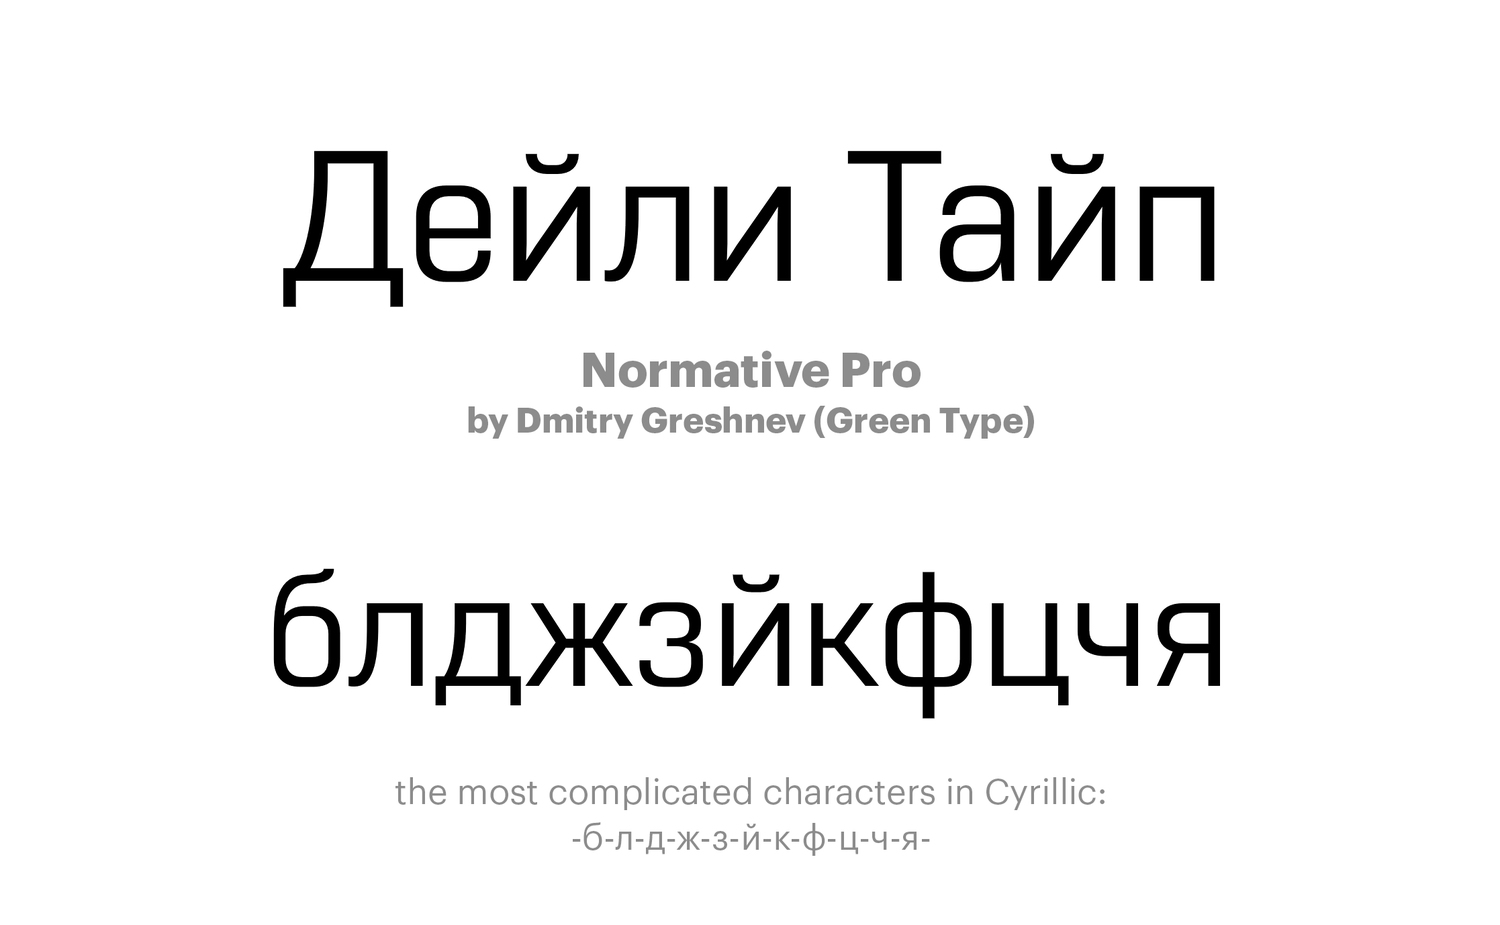 Normative-Pro-by-Dmitry-Greshnev-(Green-Type)